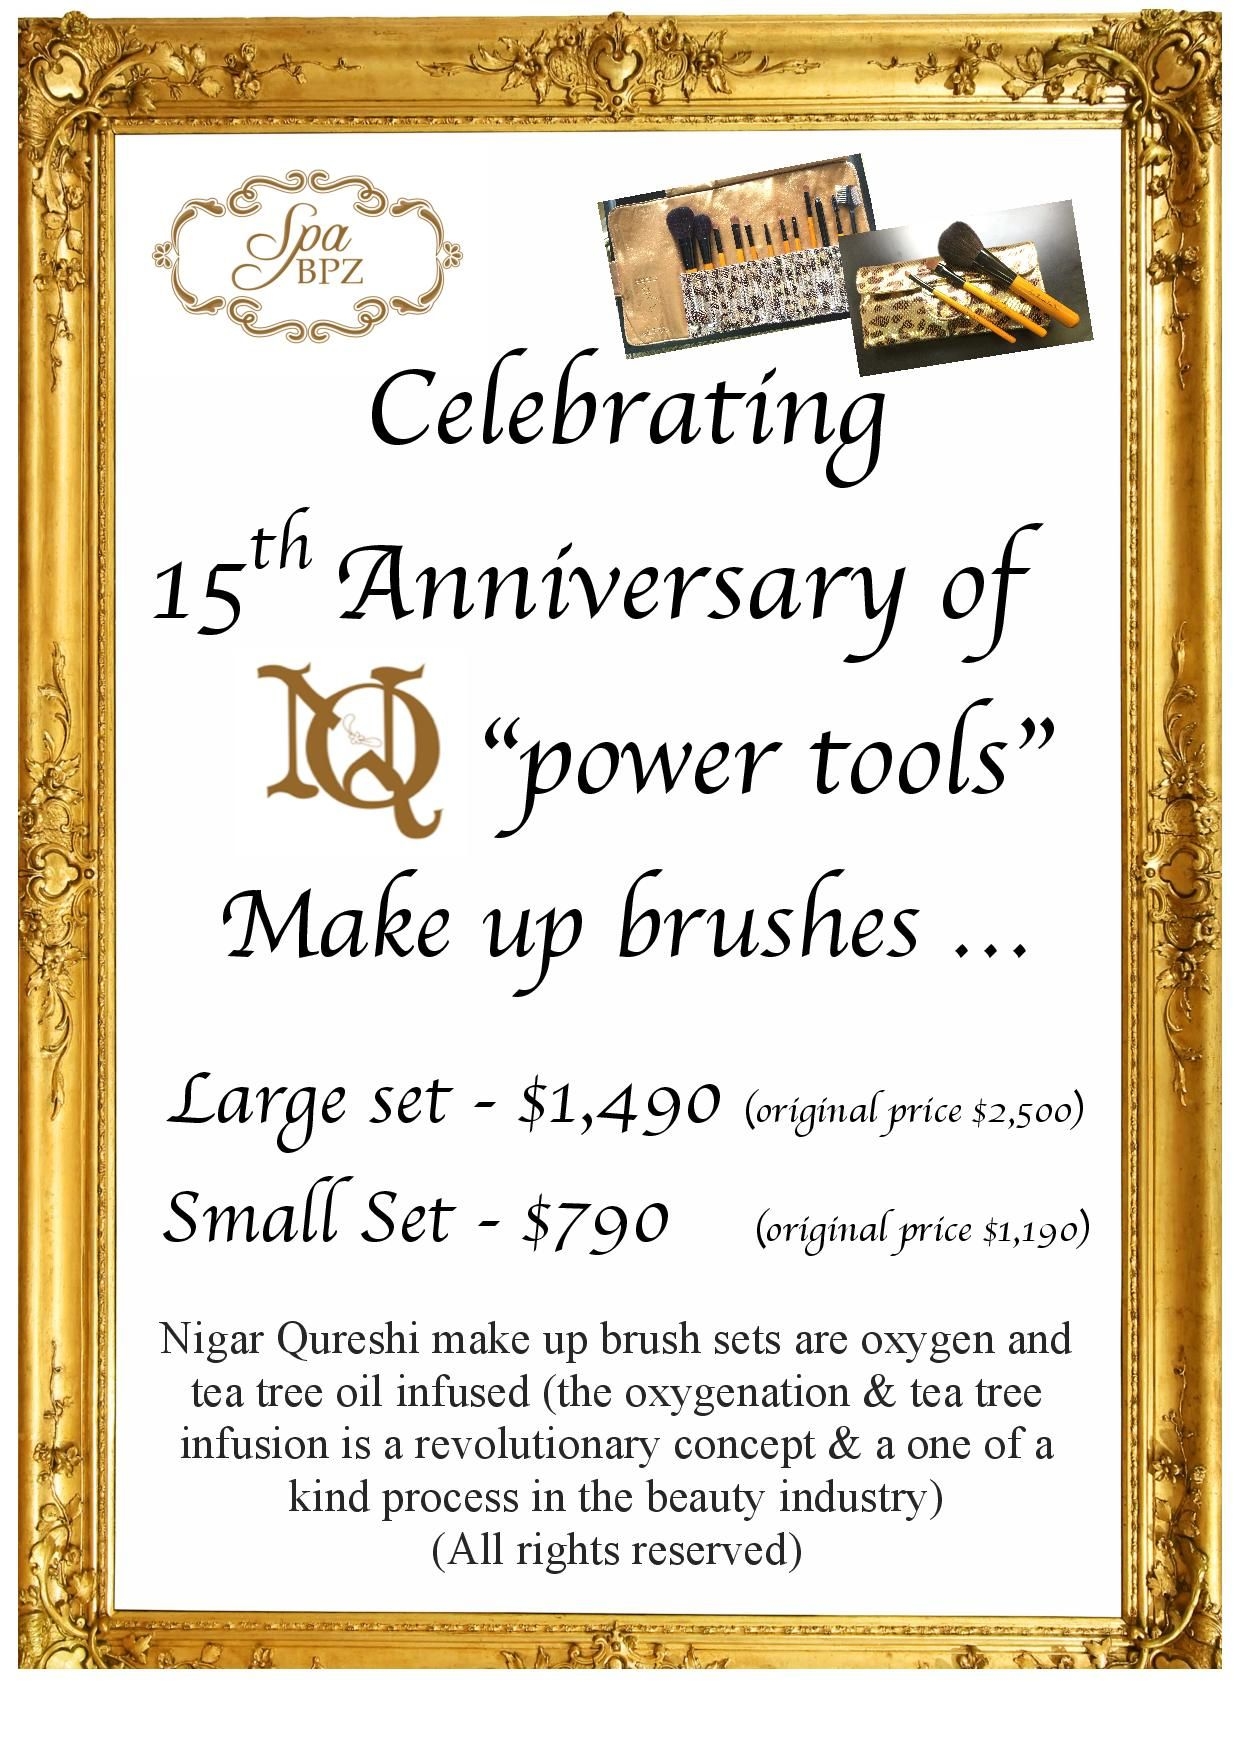 Buy any set of brush and you can get free special oil for